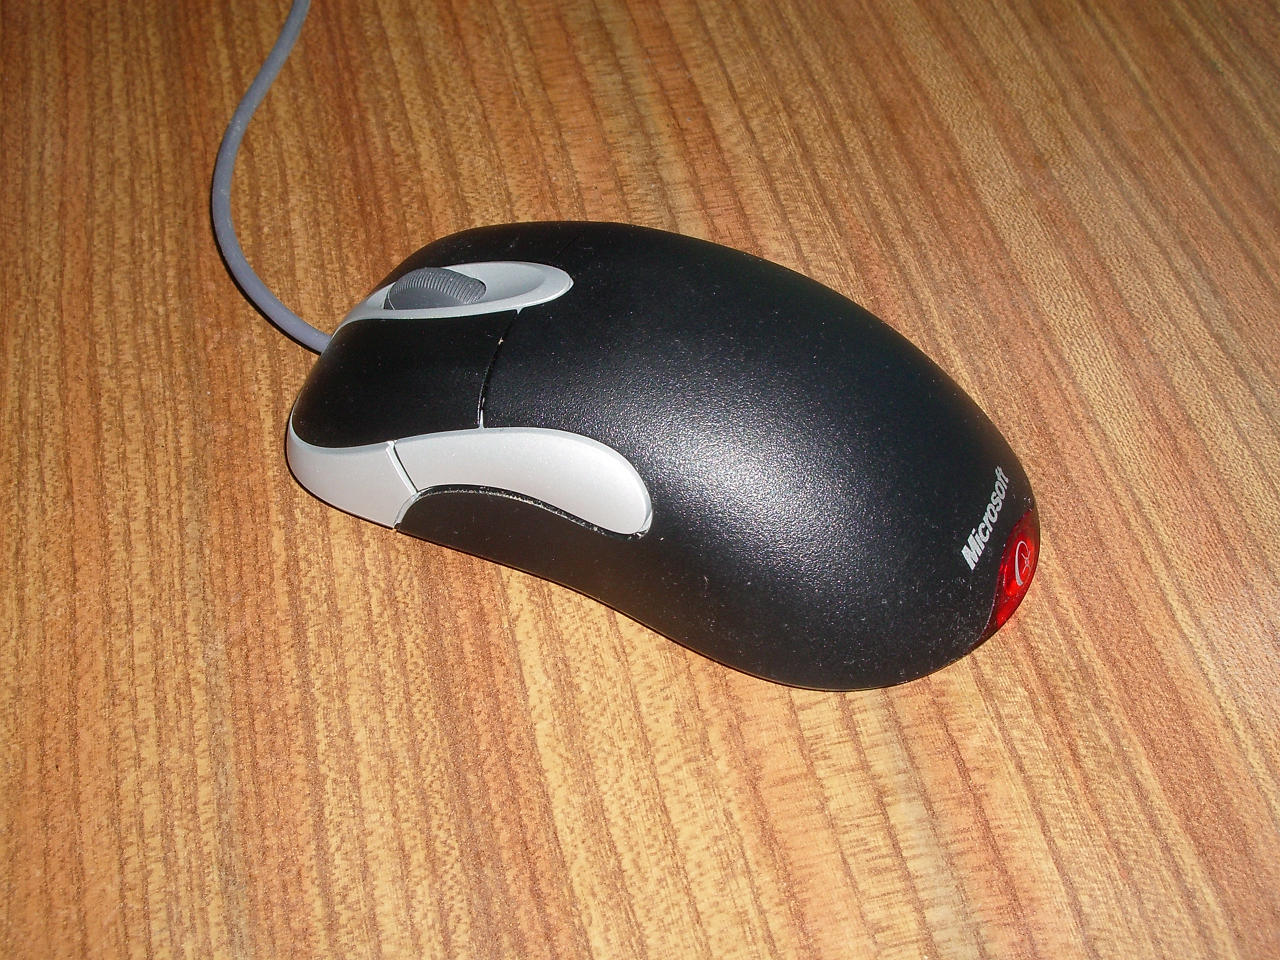 Microsoft IntelliMouse Optical 1.1A review – Telcontar.net